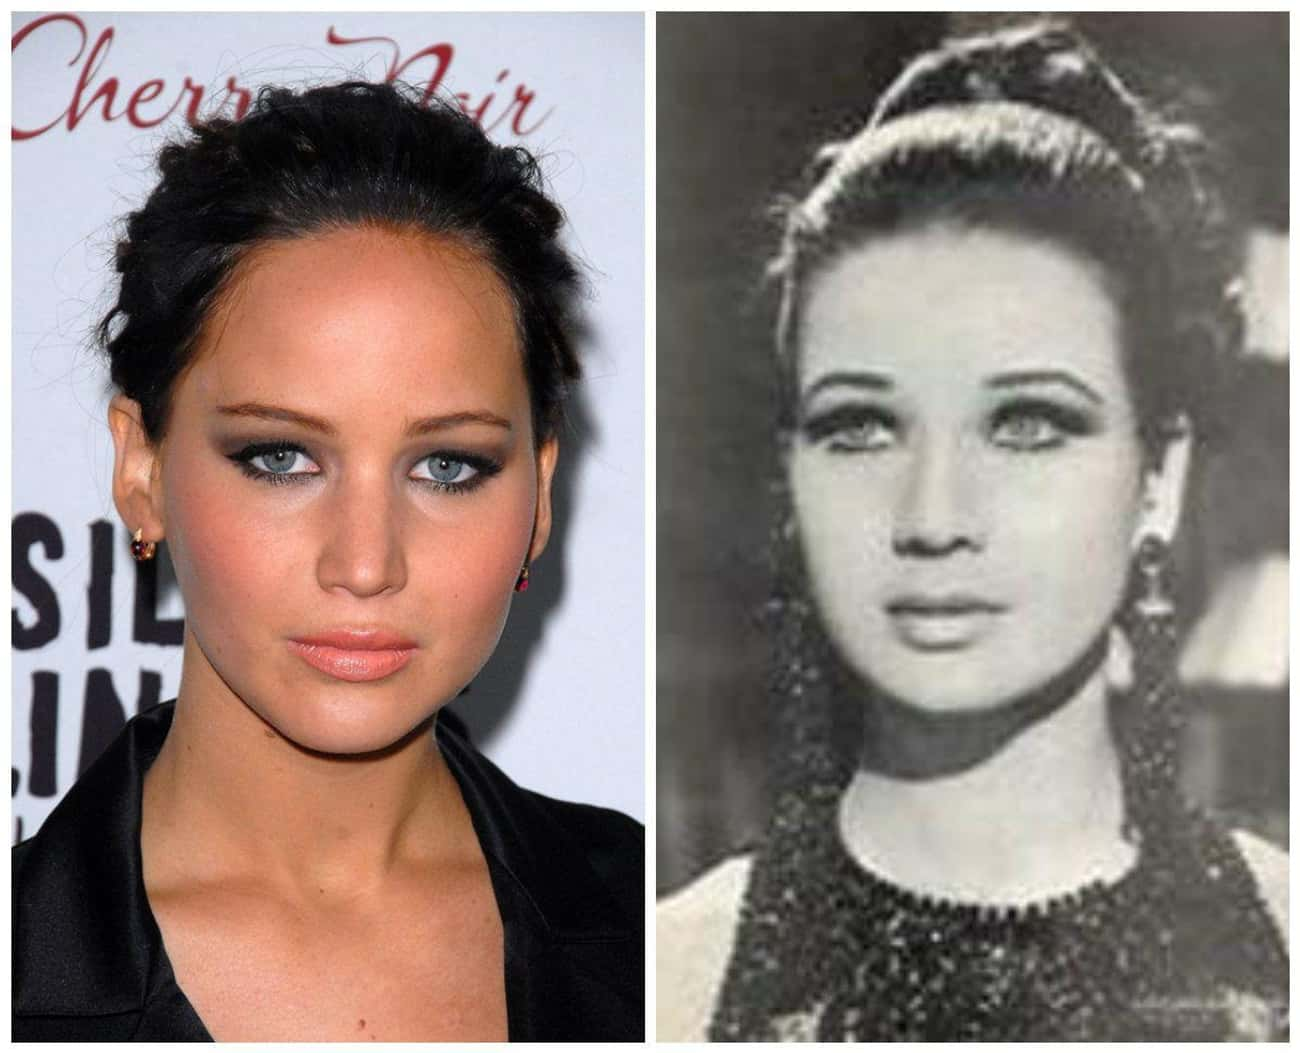 Could JLaw and Egyptian Actress Zubaida Tharwat Be Long Lost Relatives?